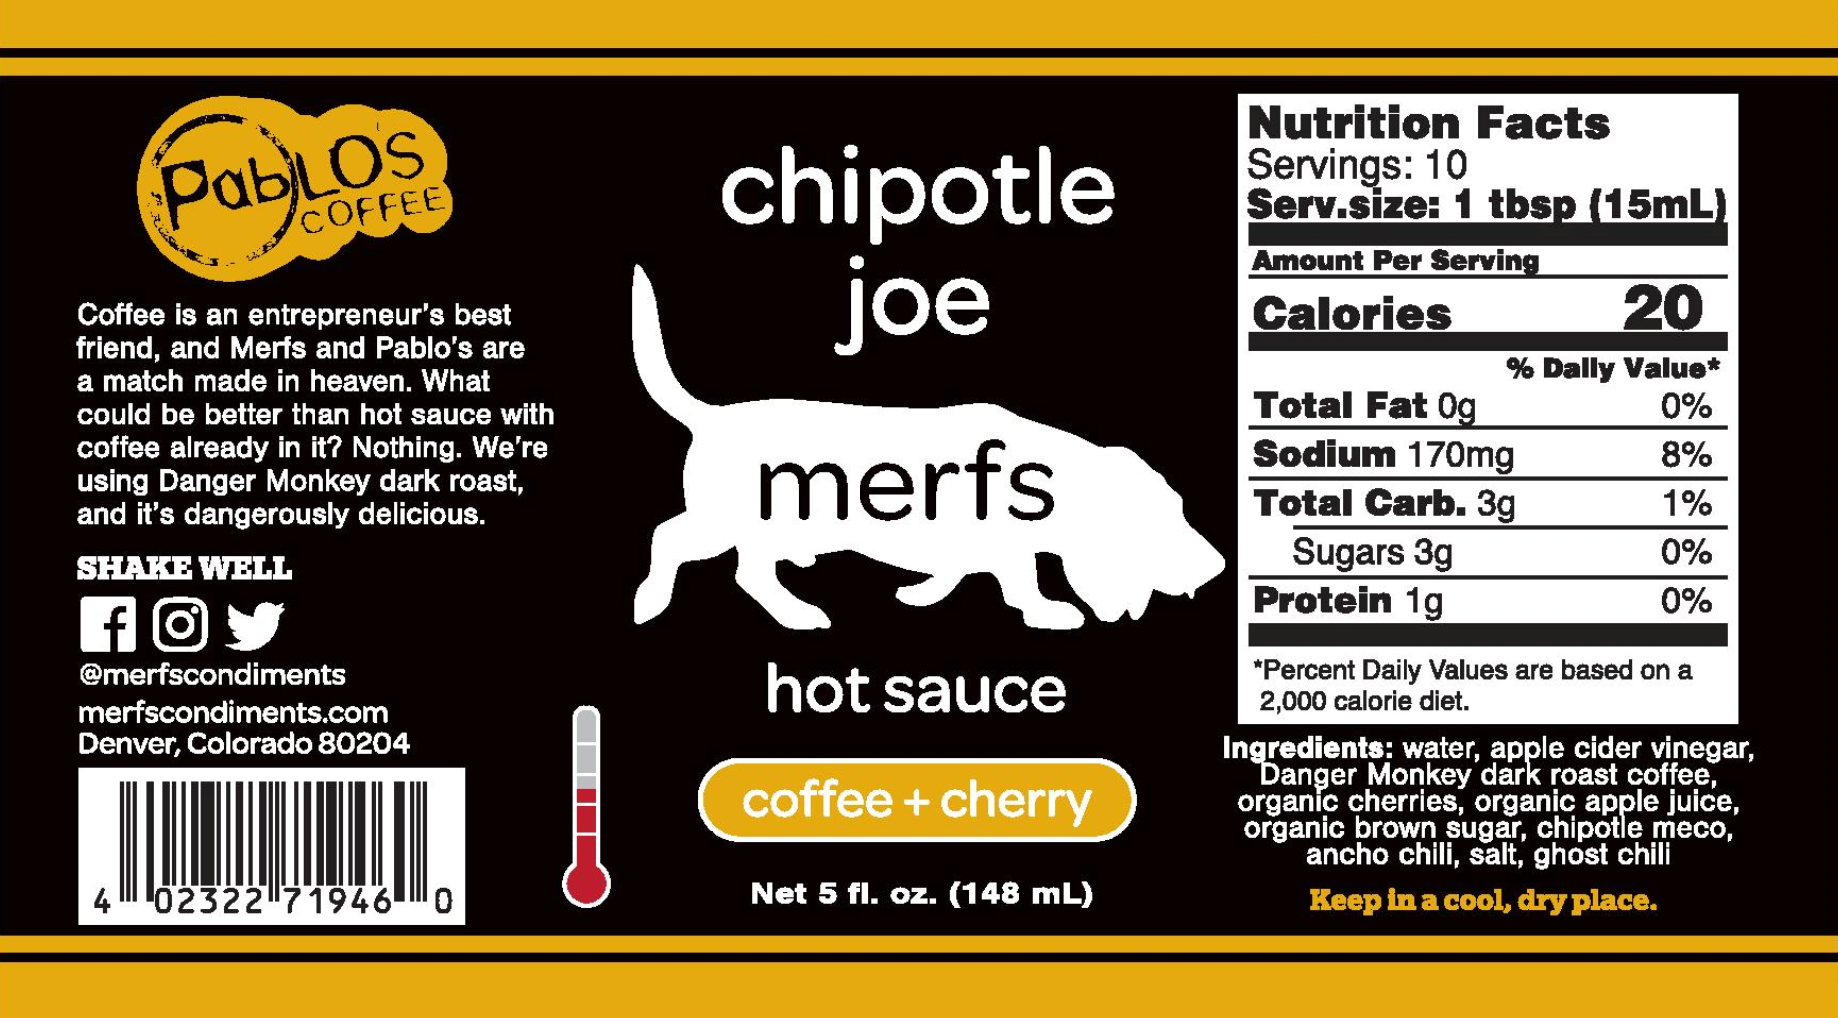 Chipotle Joe Hot Sauce Label and Nutrition Information